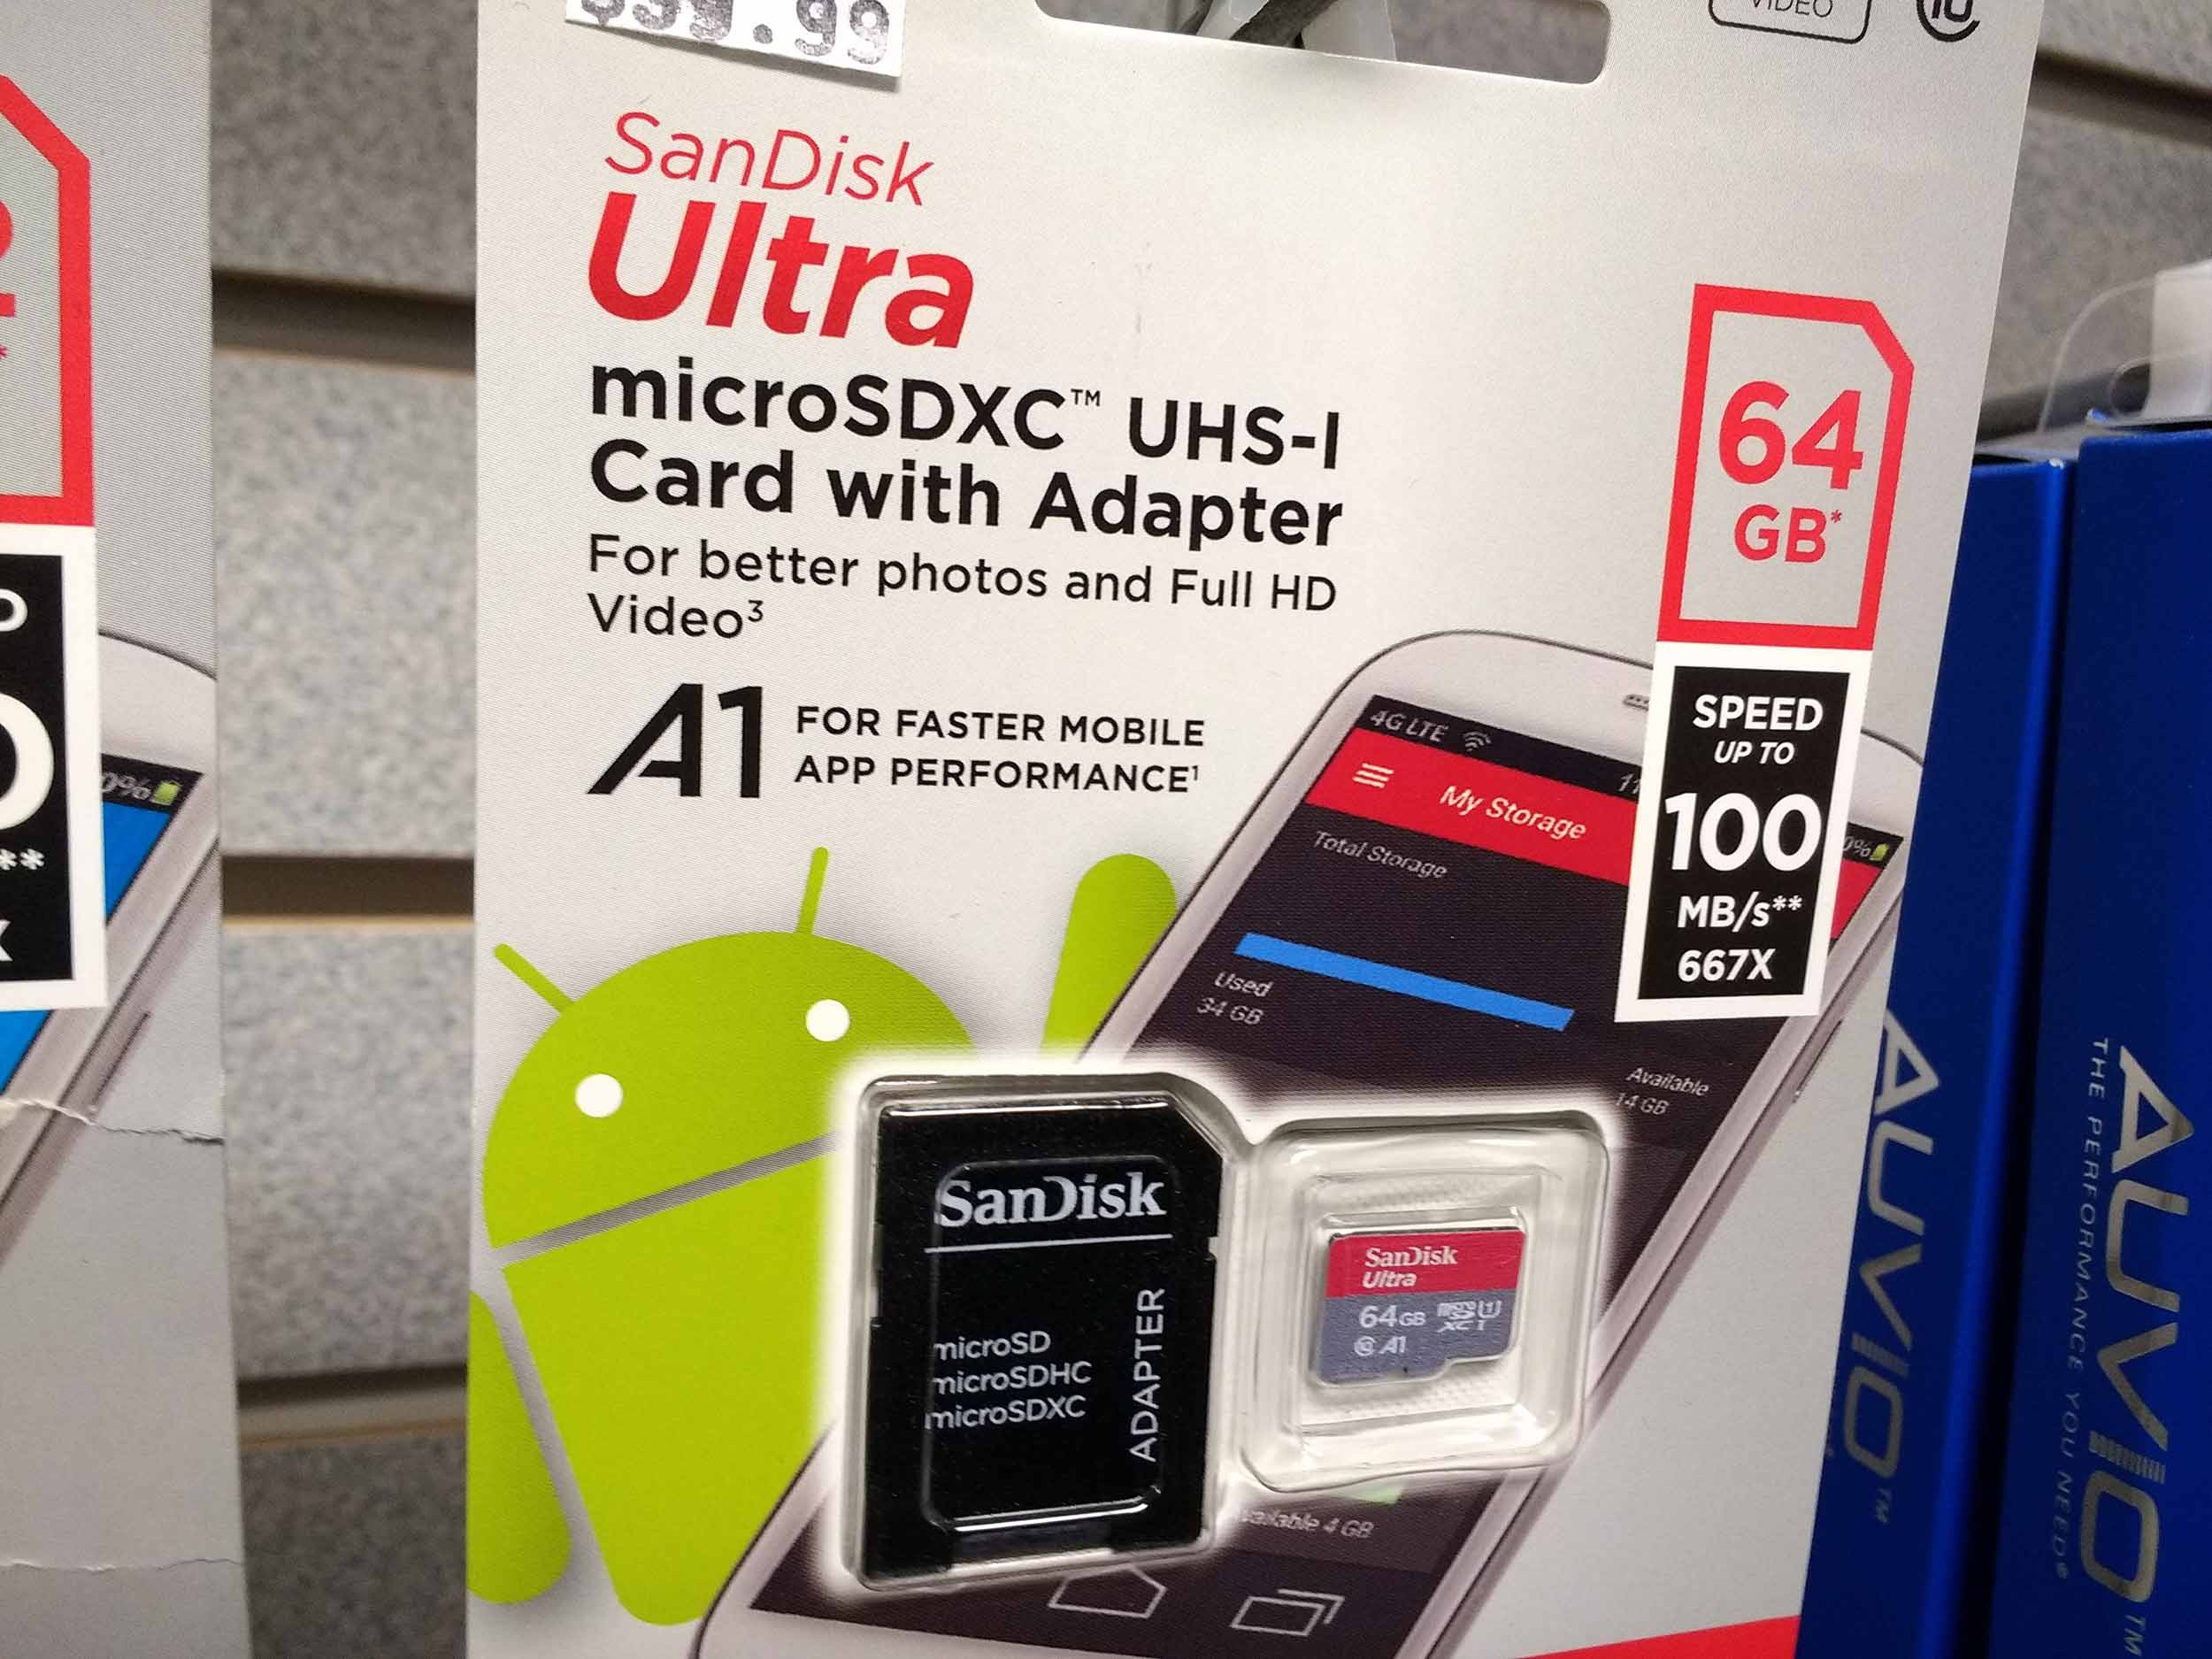 Large capacity SD cards and flash drives are always in stock and often on sale.